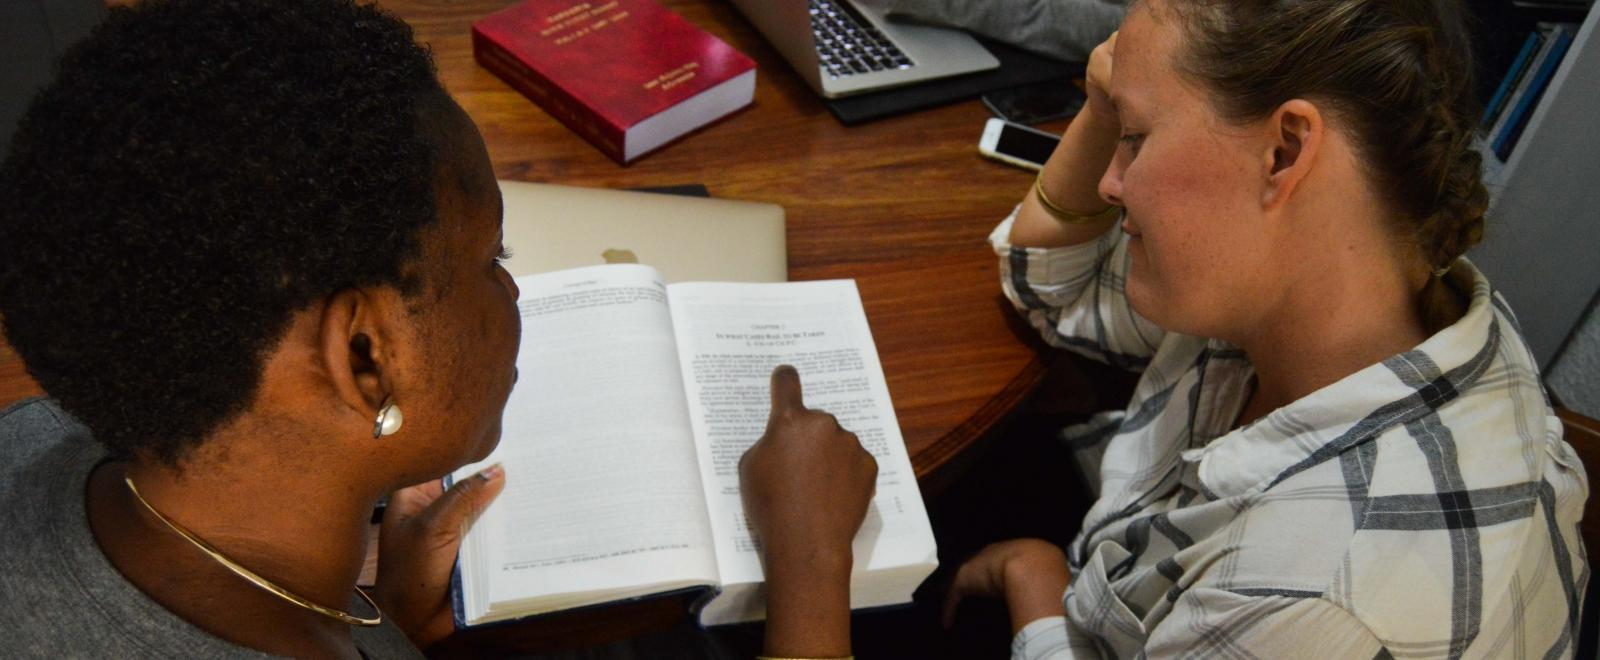 A student is assisted by a Projects Abroad staff member during her Human Rights internship in Tanzania.